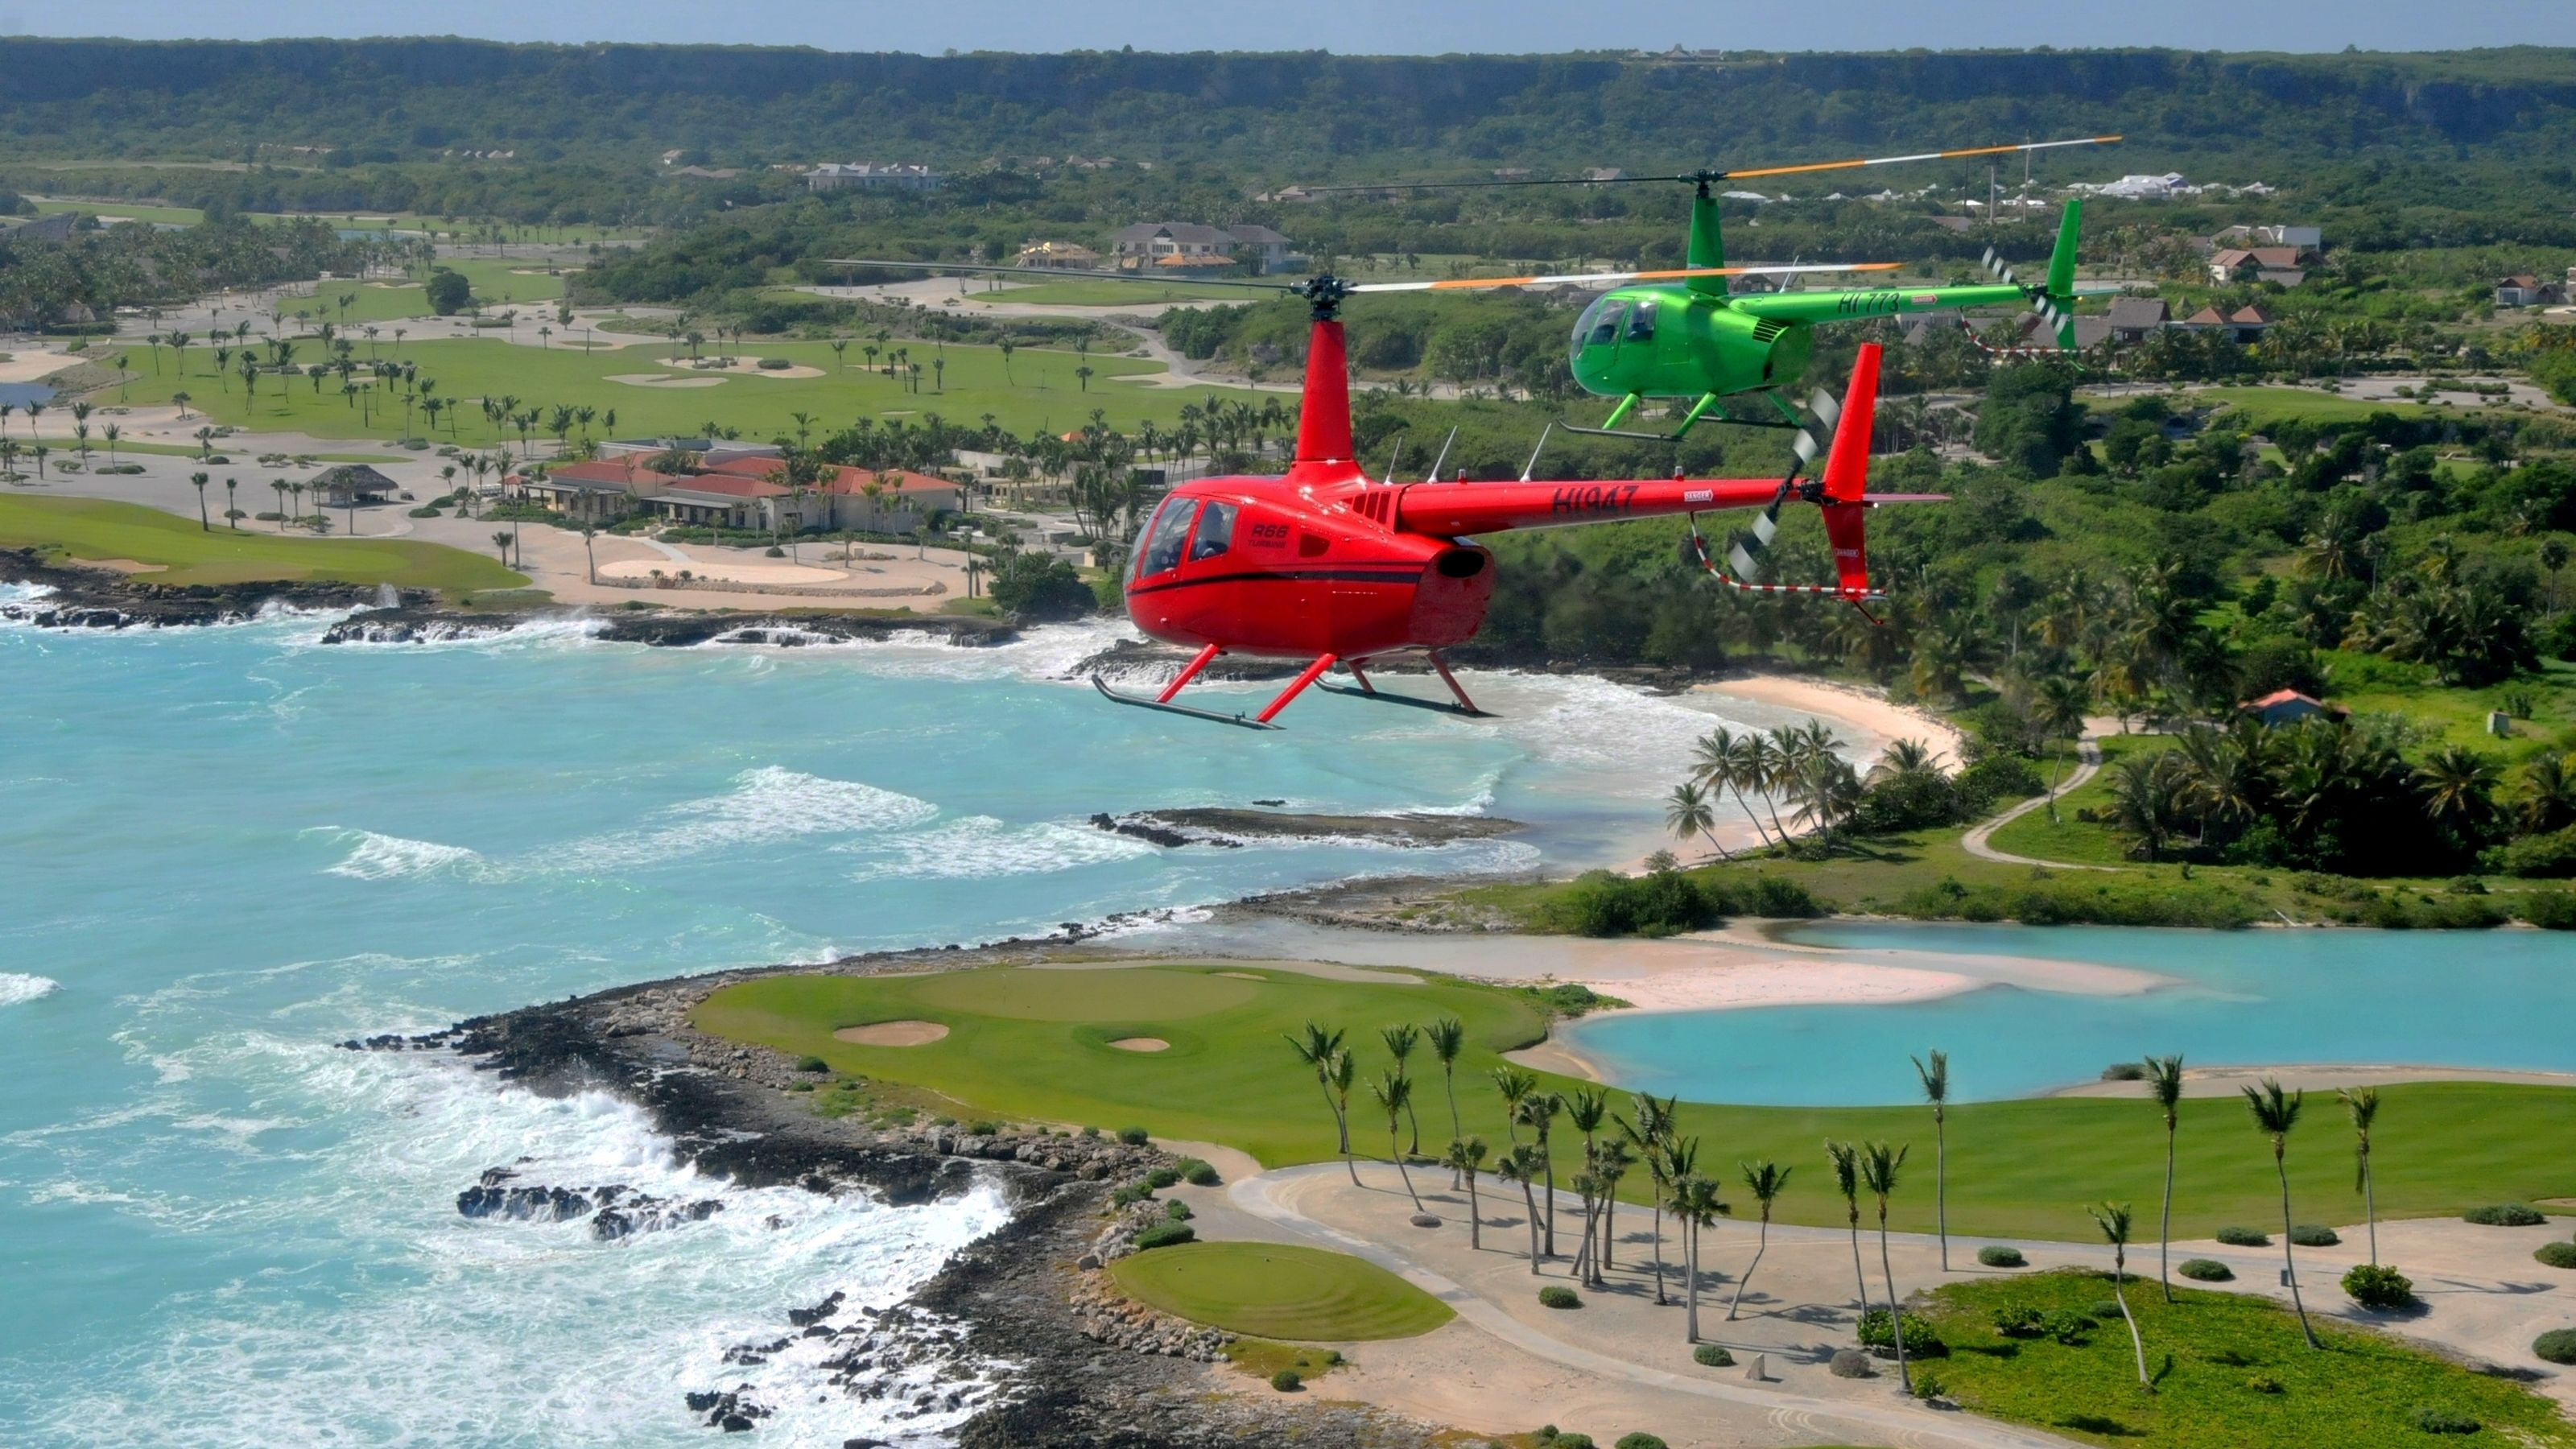 Helicopters over coast in Punta Cana